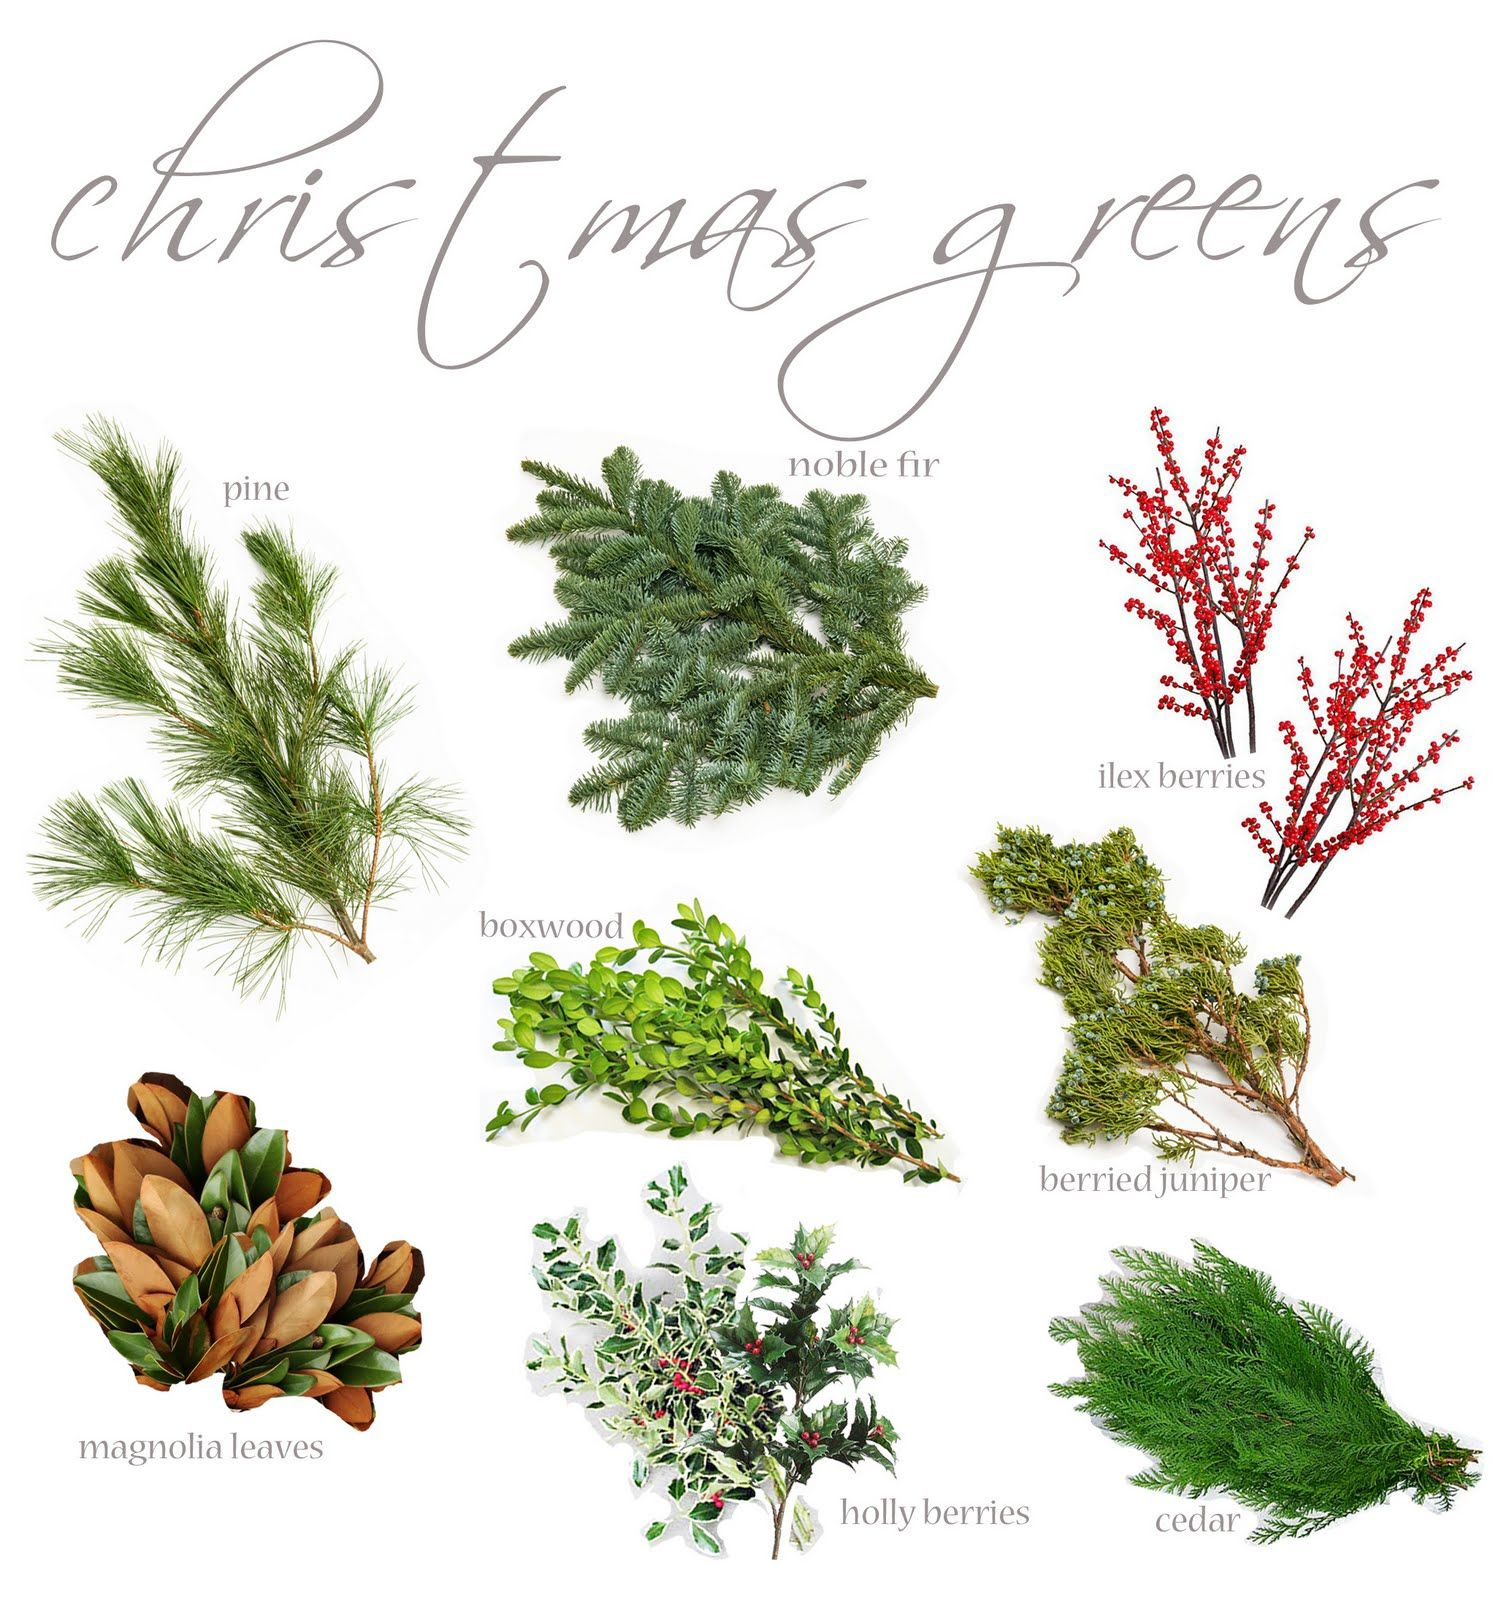 Christmas greens | Foliage, greenery and berries | Pinterest ...